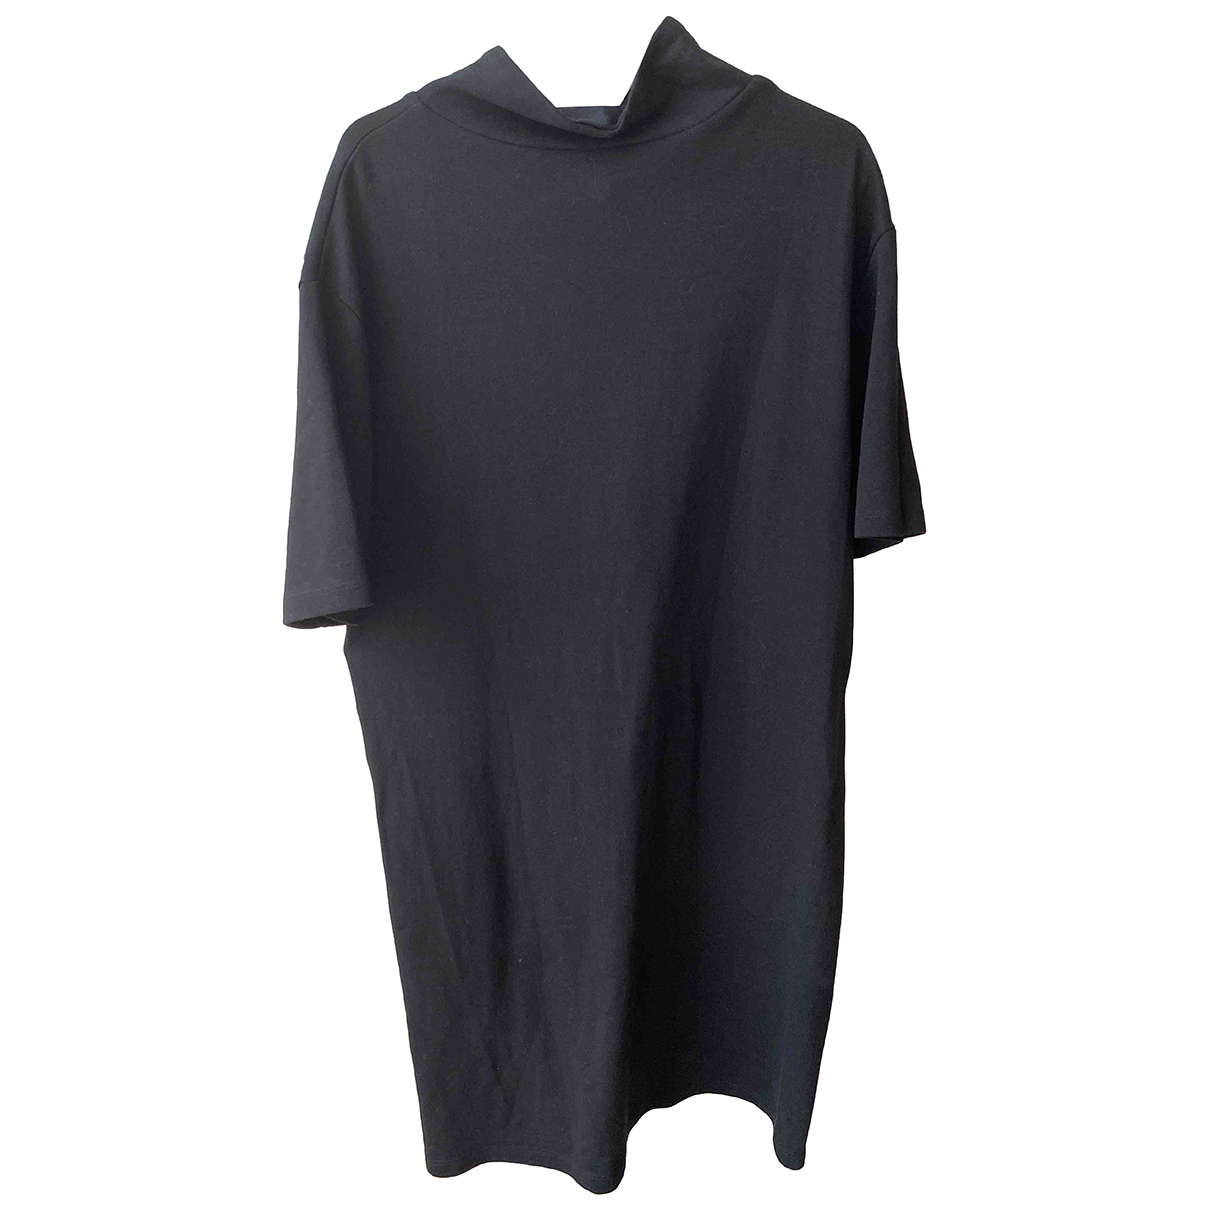 Zara \N Black Cotton dress for Women L International